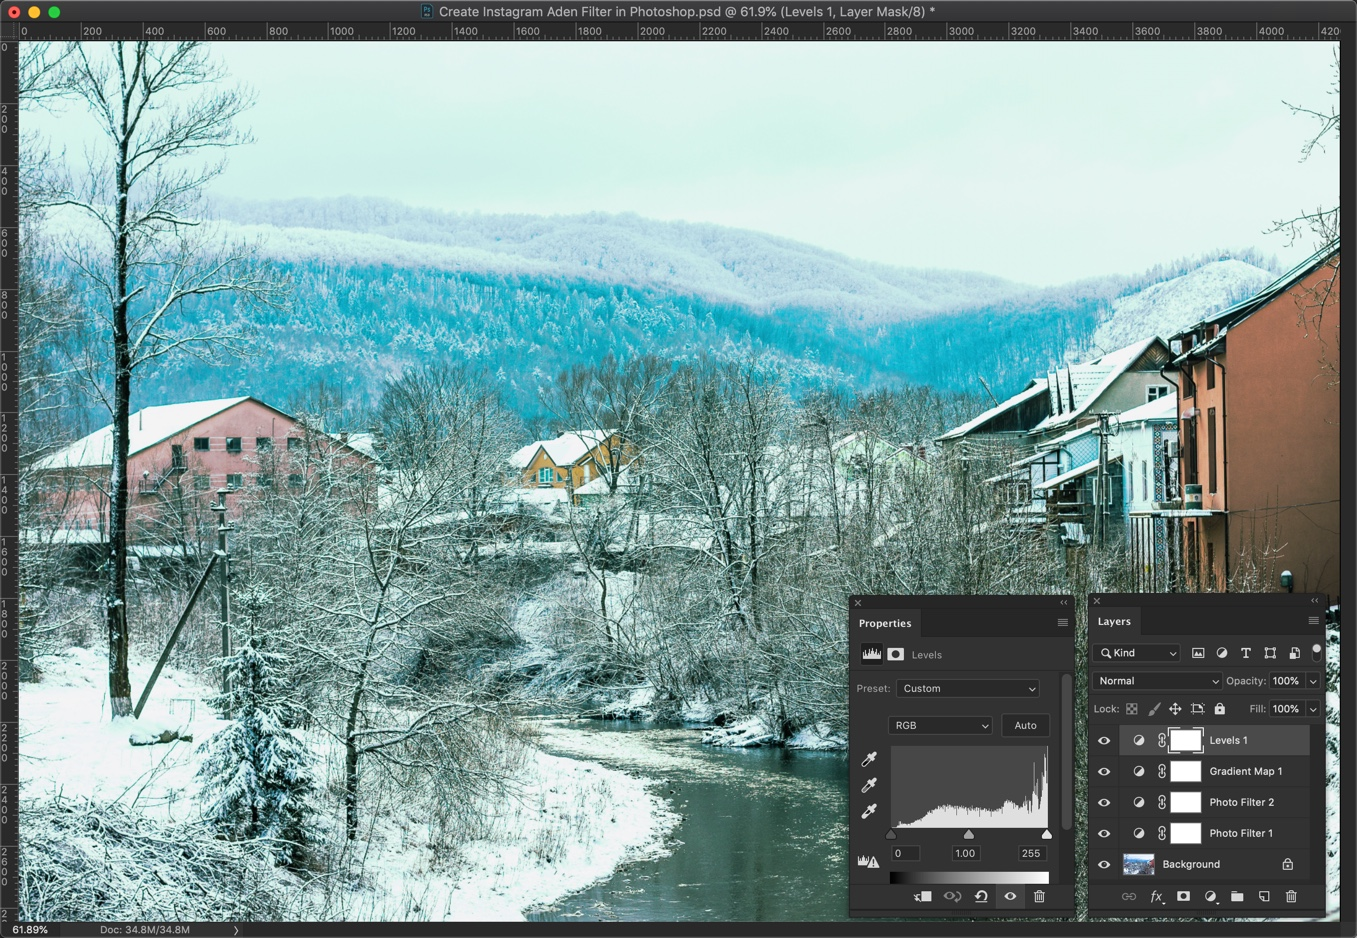 11 - [Action Included] Create Instagram Aden Filter in Photoshop